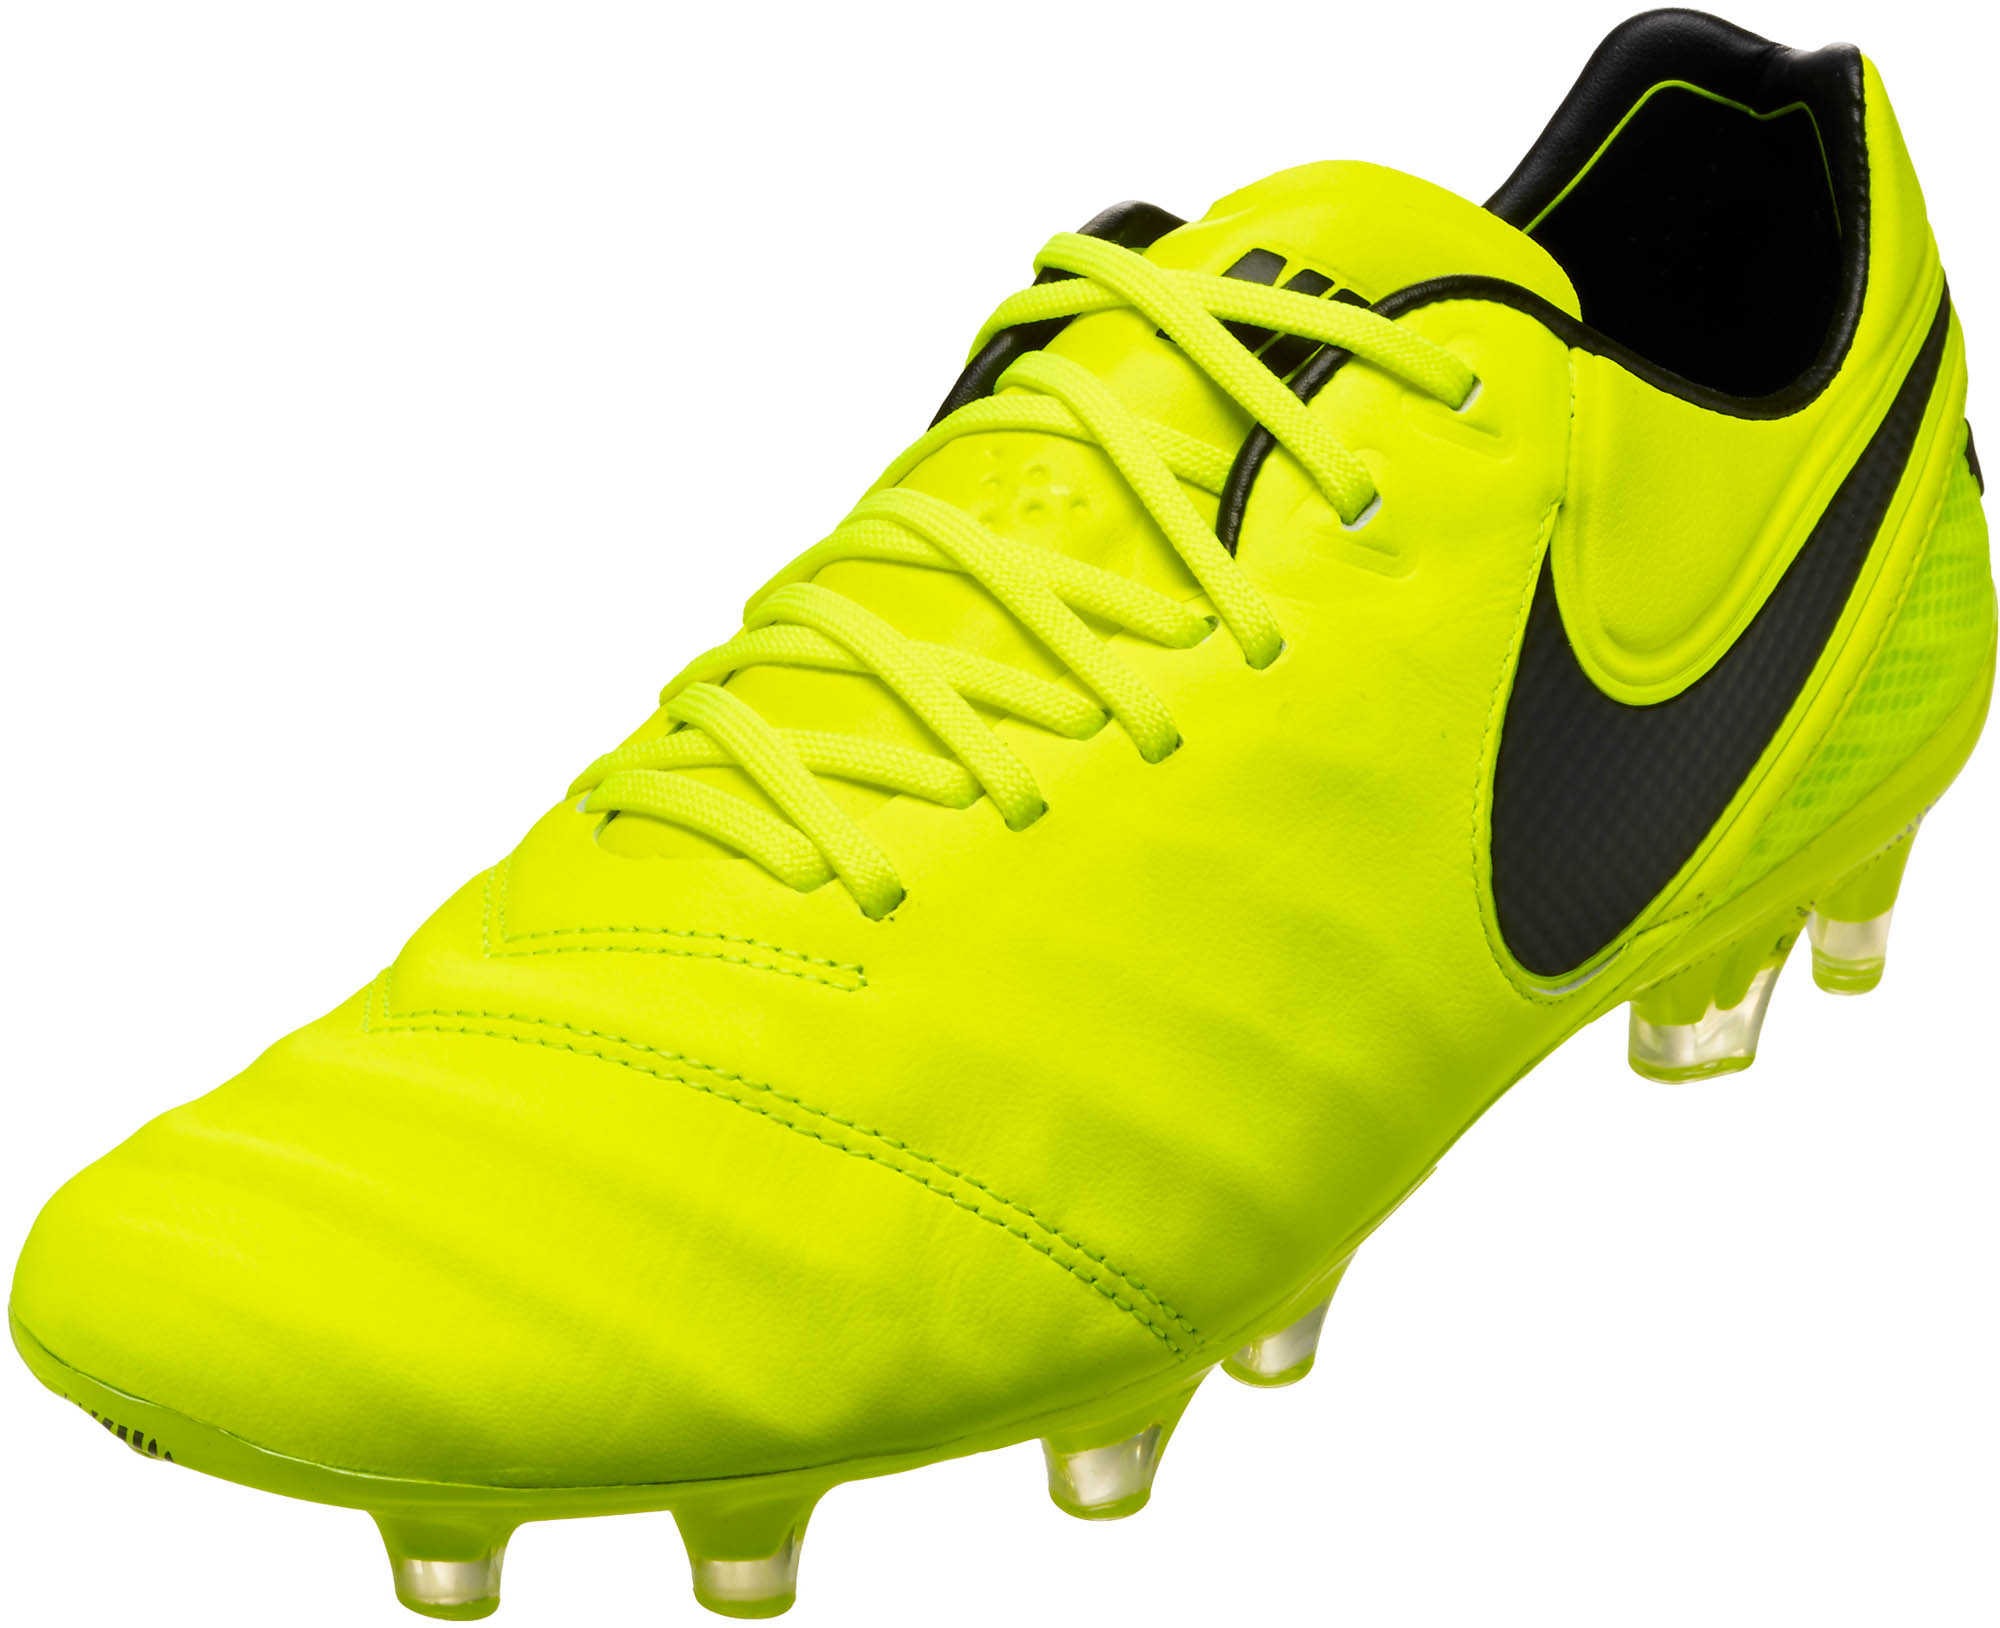 Brote Encommium Auckland  nike tiempo legend 6 elite fg > Up to 74% OFF > Free shipping